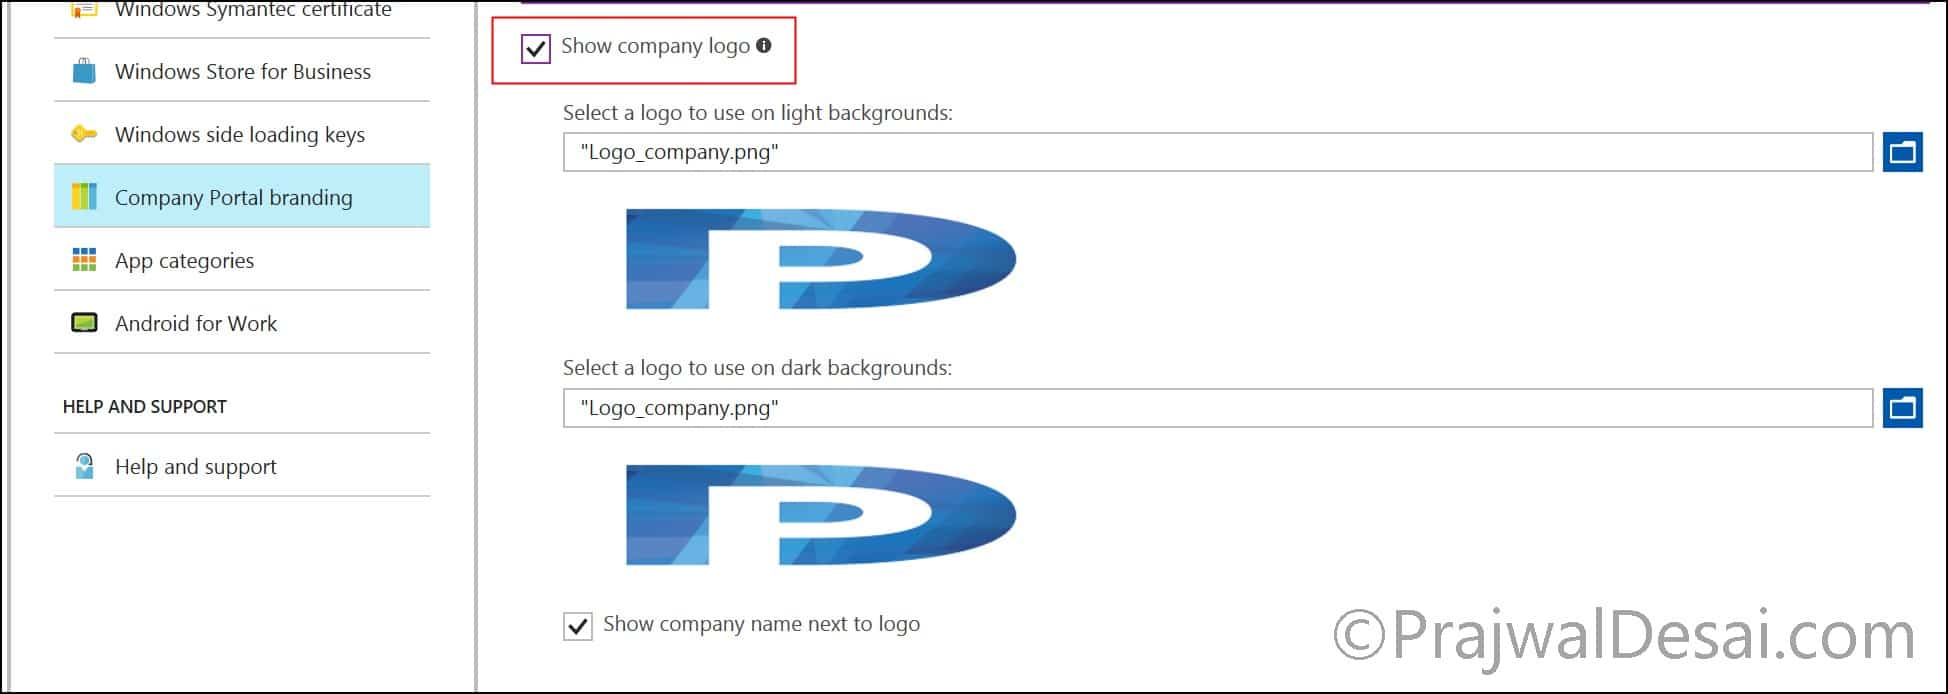 How to Configure Intune Company Portal Branding